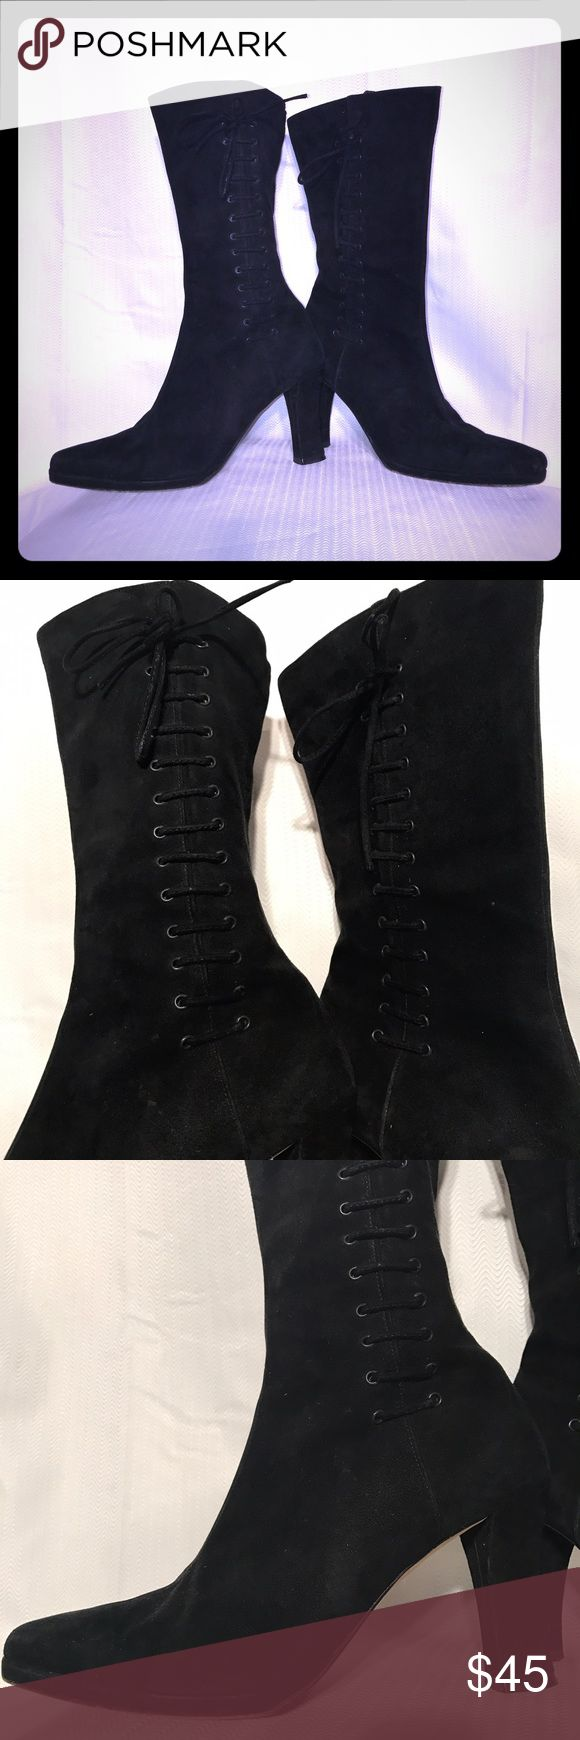 Via Spiga for Neiman Marcus suede boots. Size 7 Via Spiga for Neiman Marcus suede boots. Size 7   Black Suede with shoe lace up the outside. Via Spiga Shoes